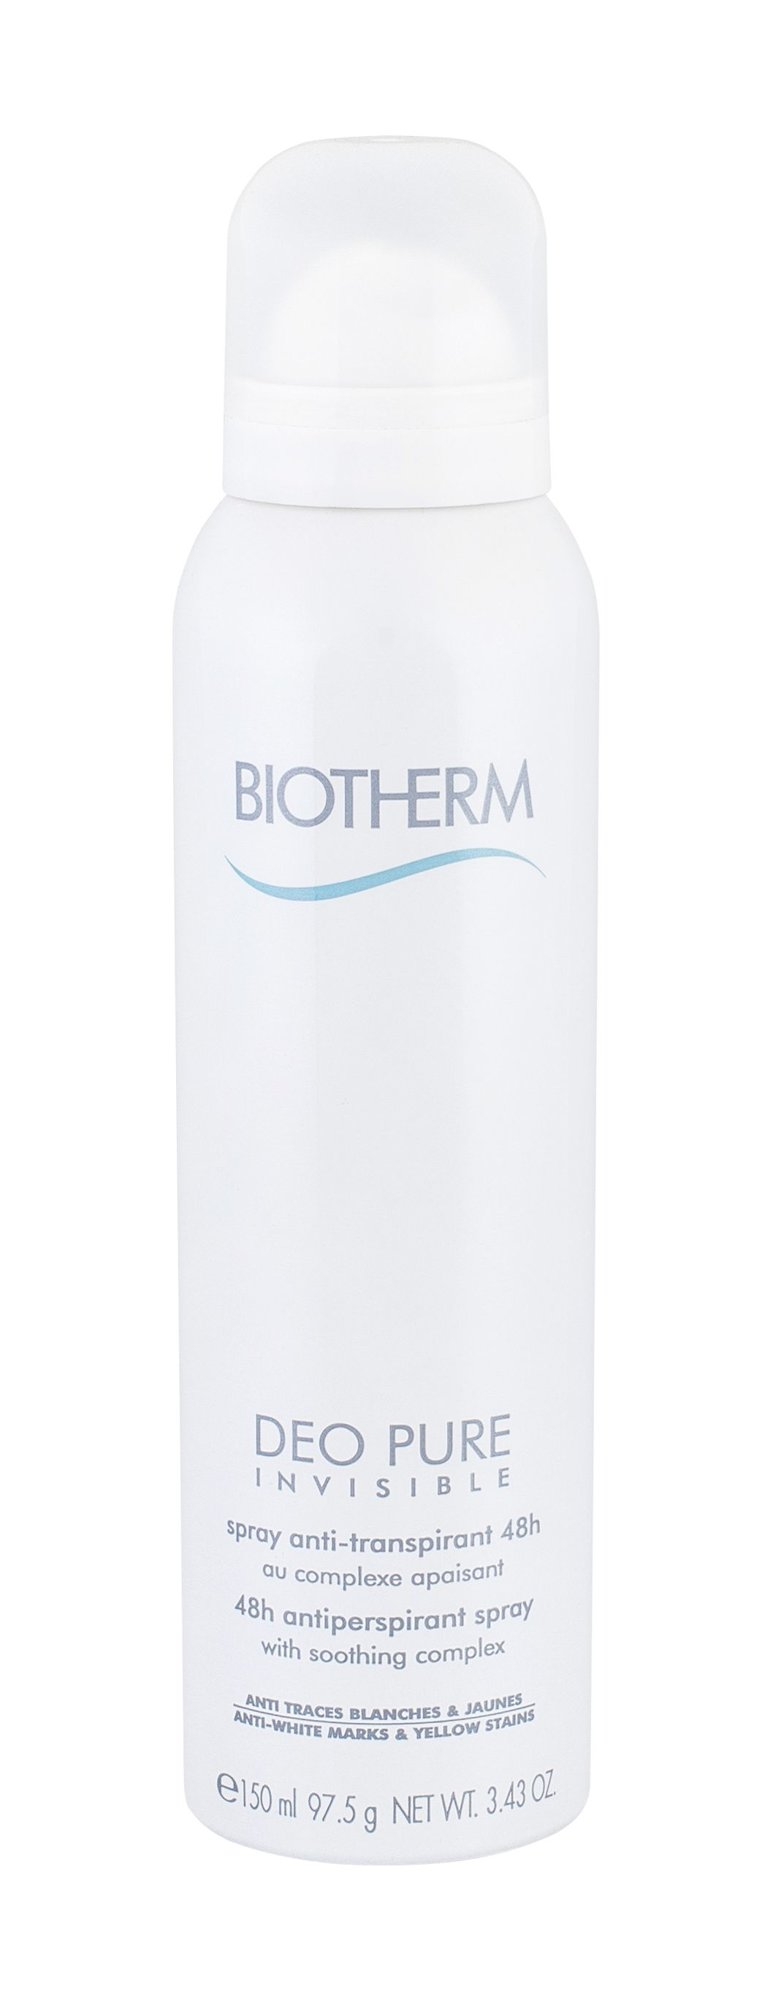 Biotherm Deo Pure Invisible Antiperspirant 150ml  48h